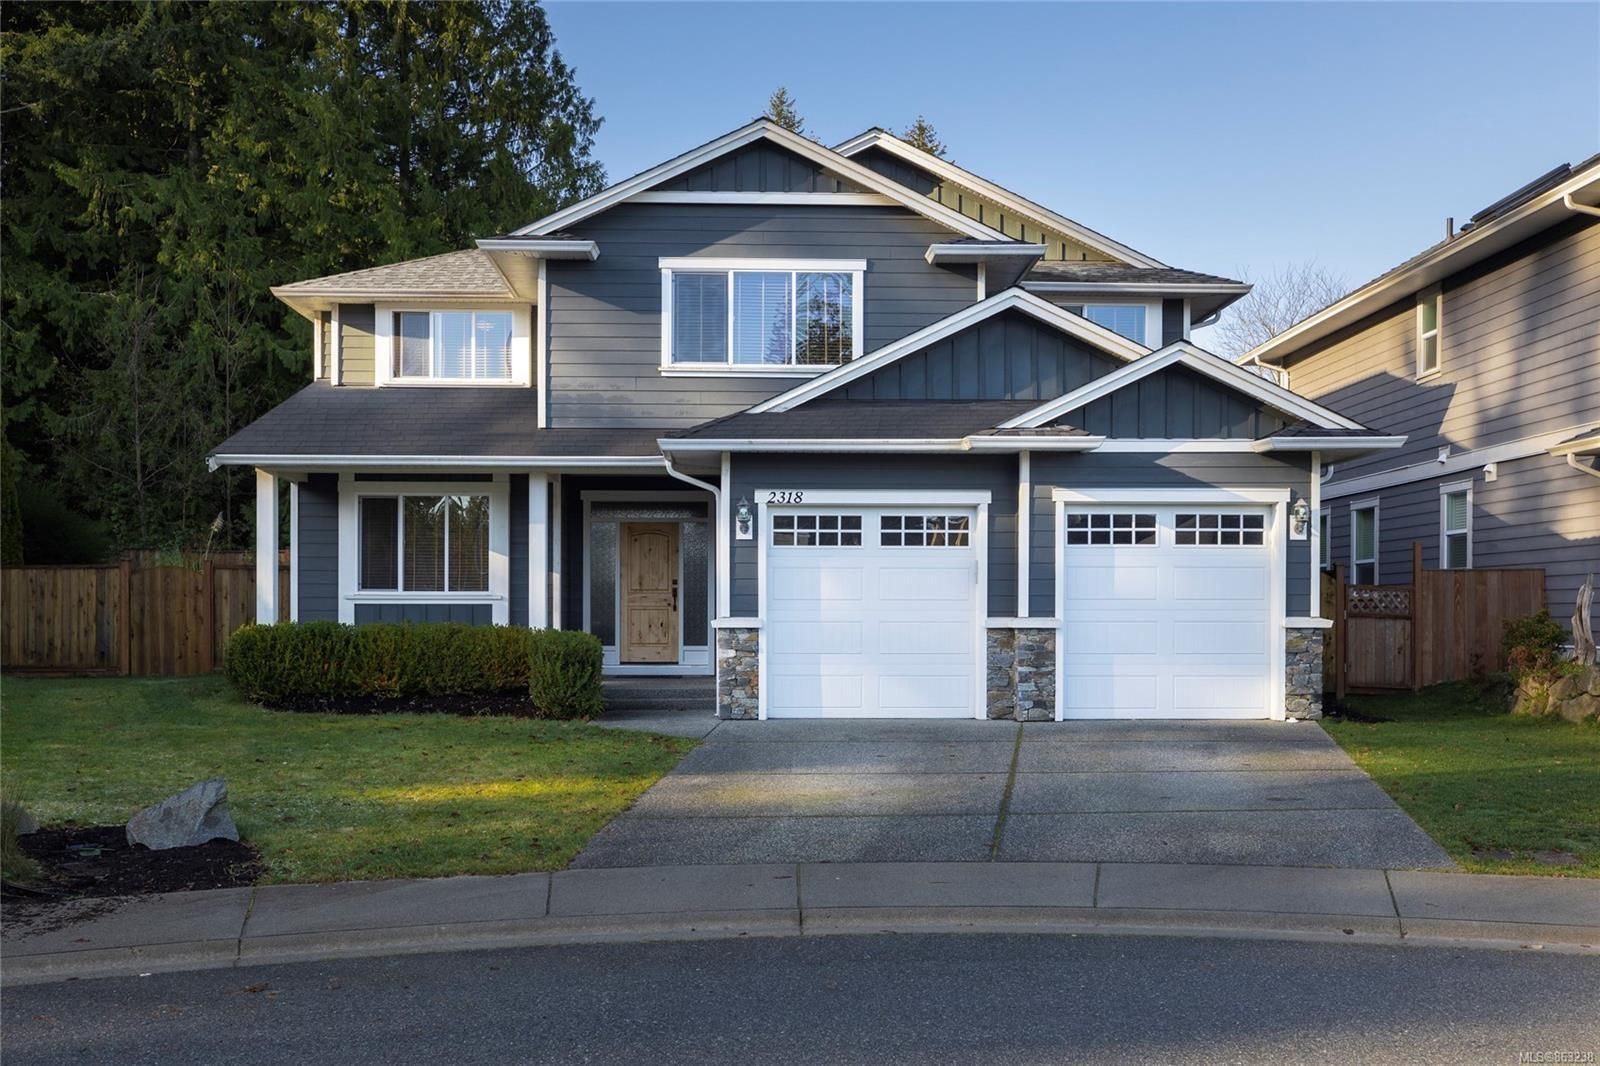 Main Photo: 2318 Leighton Rd in : Na South Jingle Pot House for sale (Nanaimo)  : MLS®# 863238